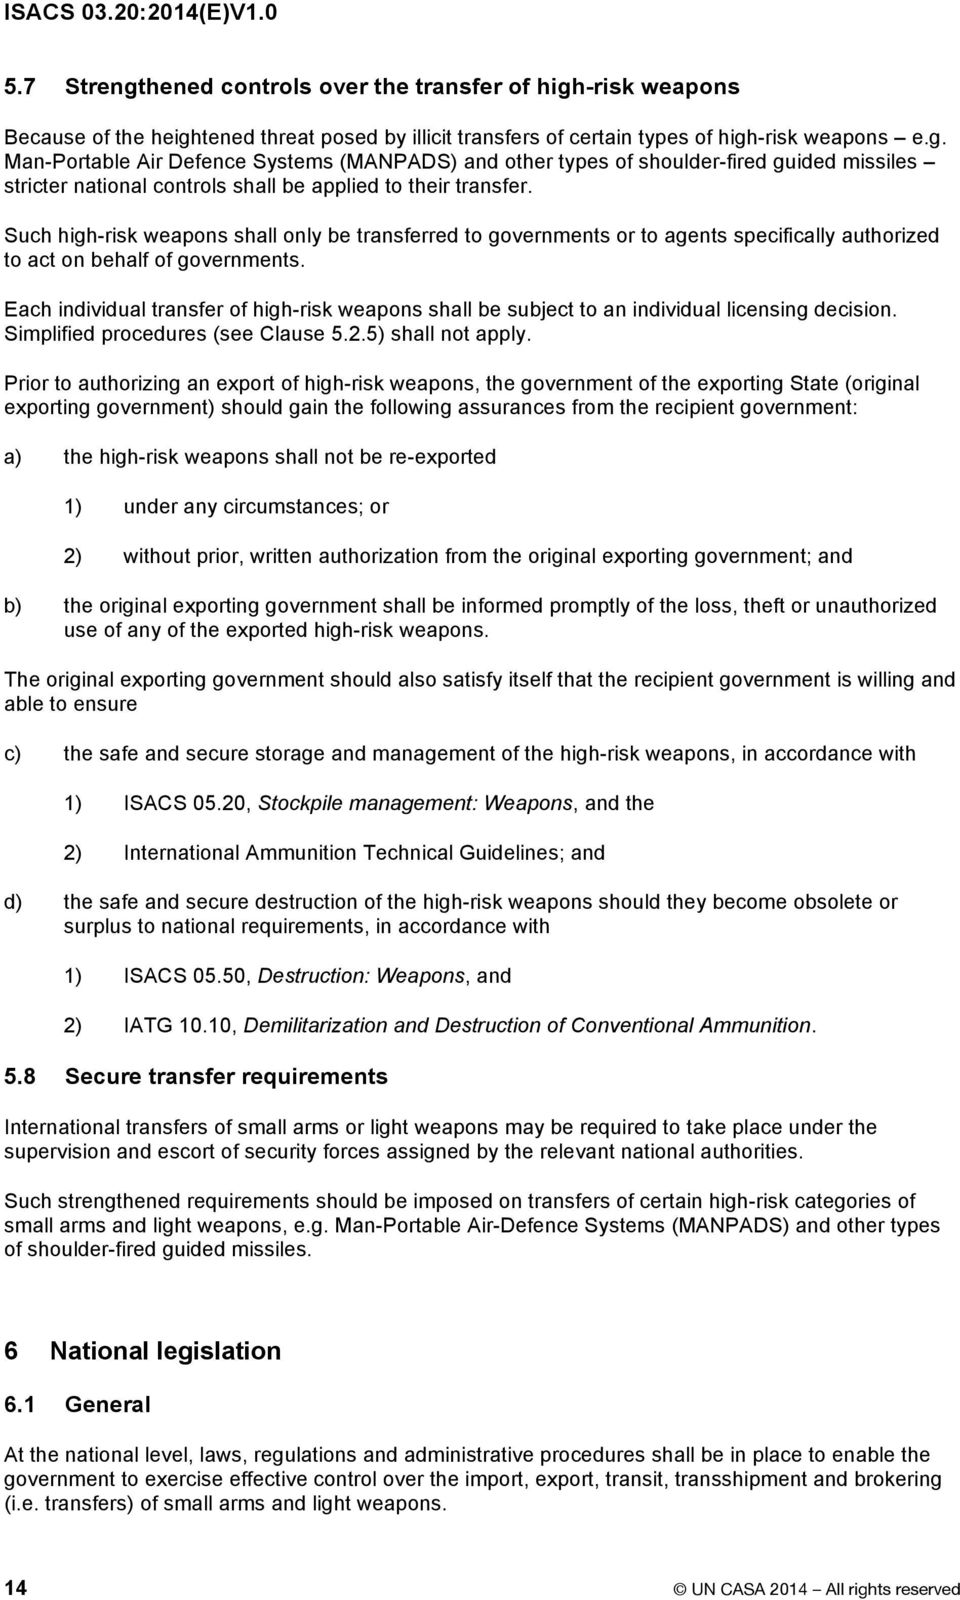 Each individual transfer of high-risk weapons shall be subject to an individual licensing decision. Simplified procedures (see Clause 5.2.5) shall not apply.